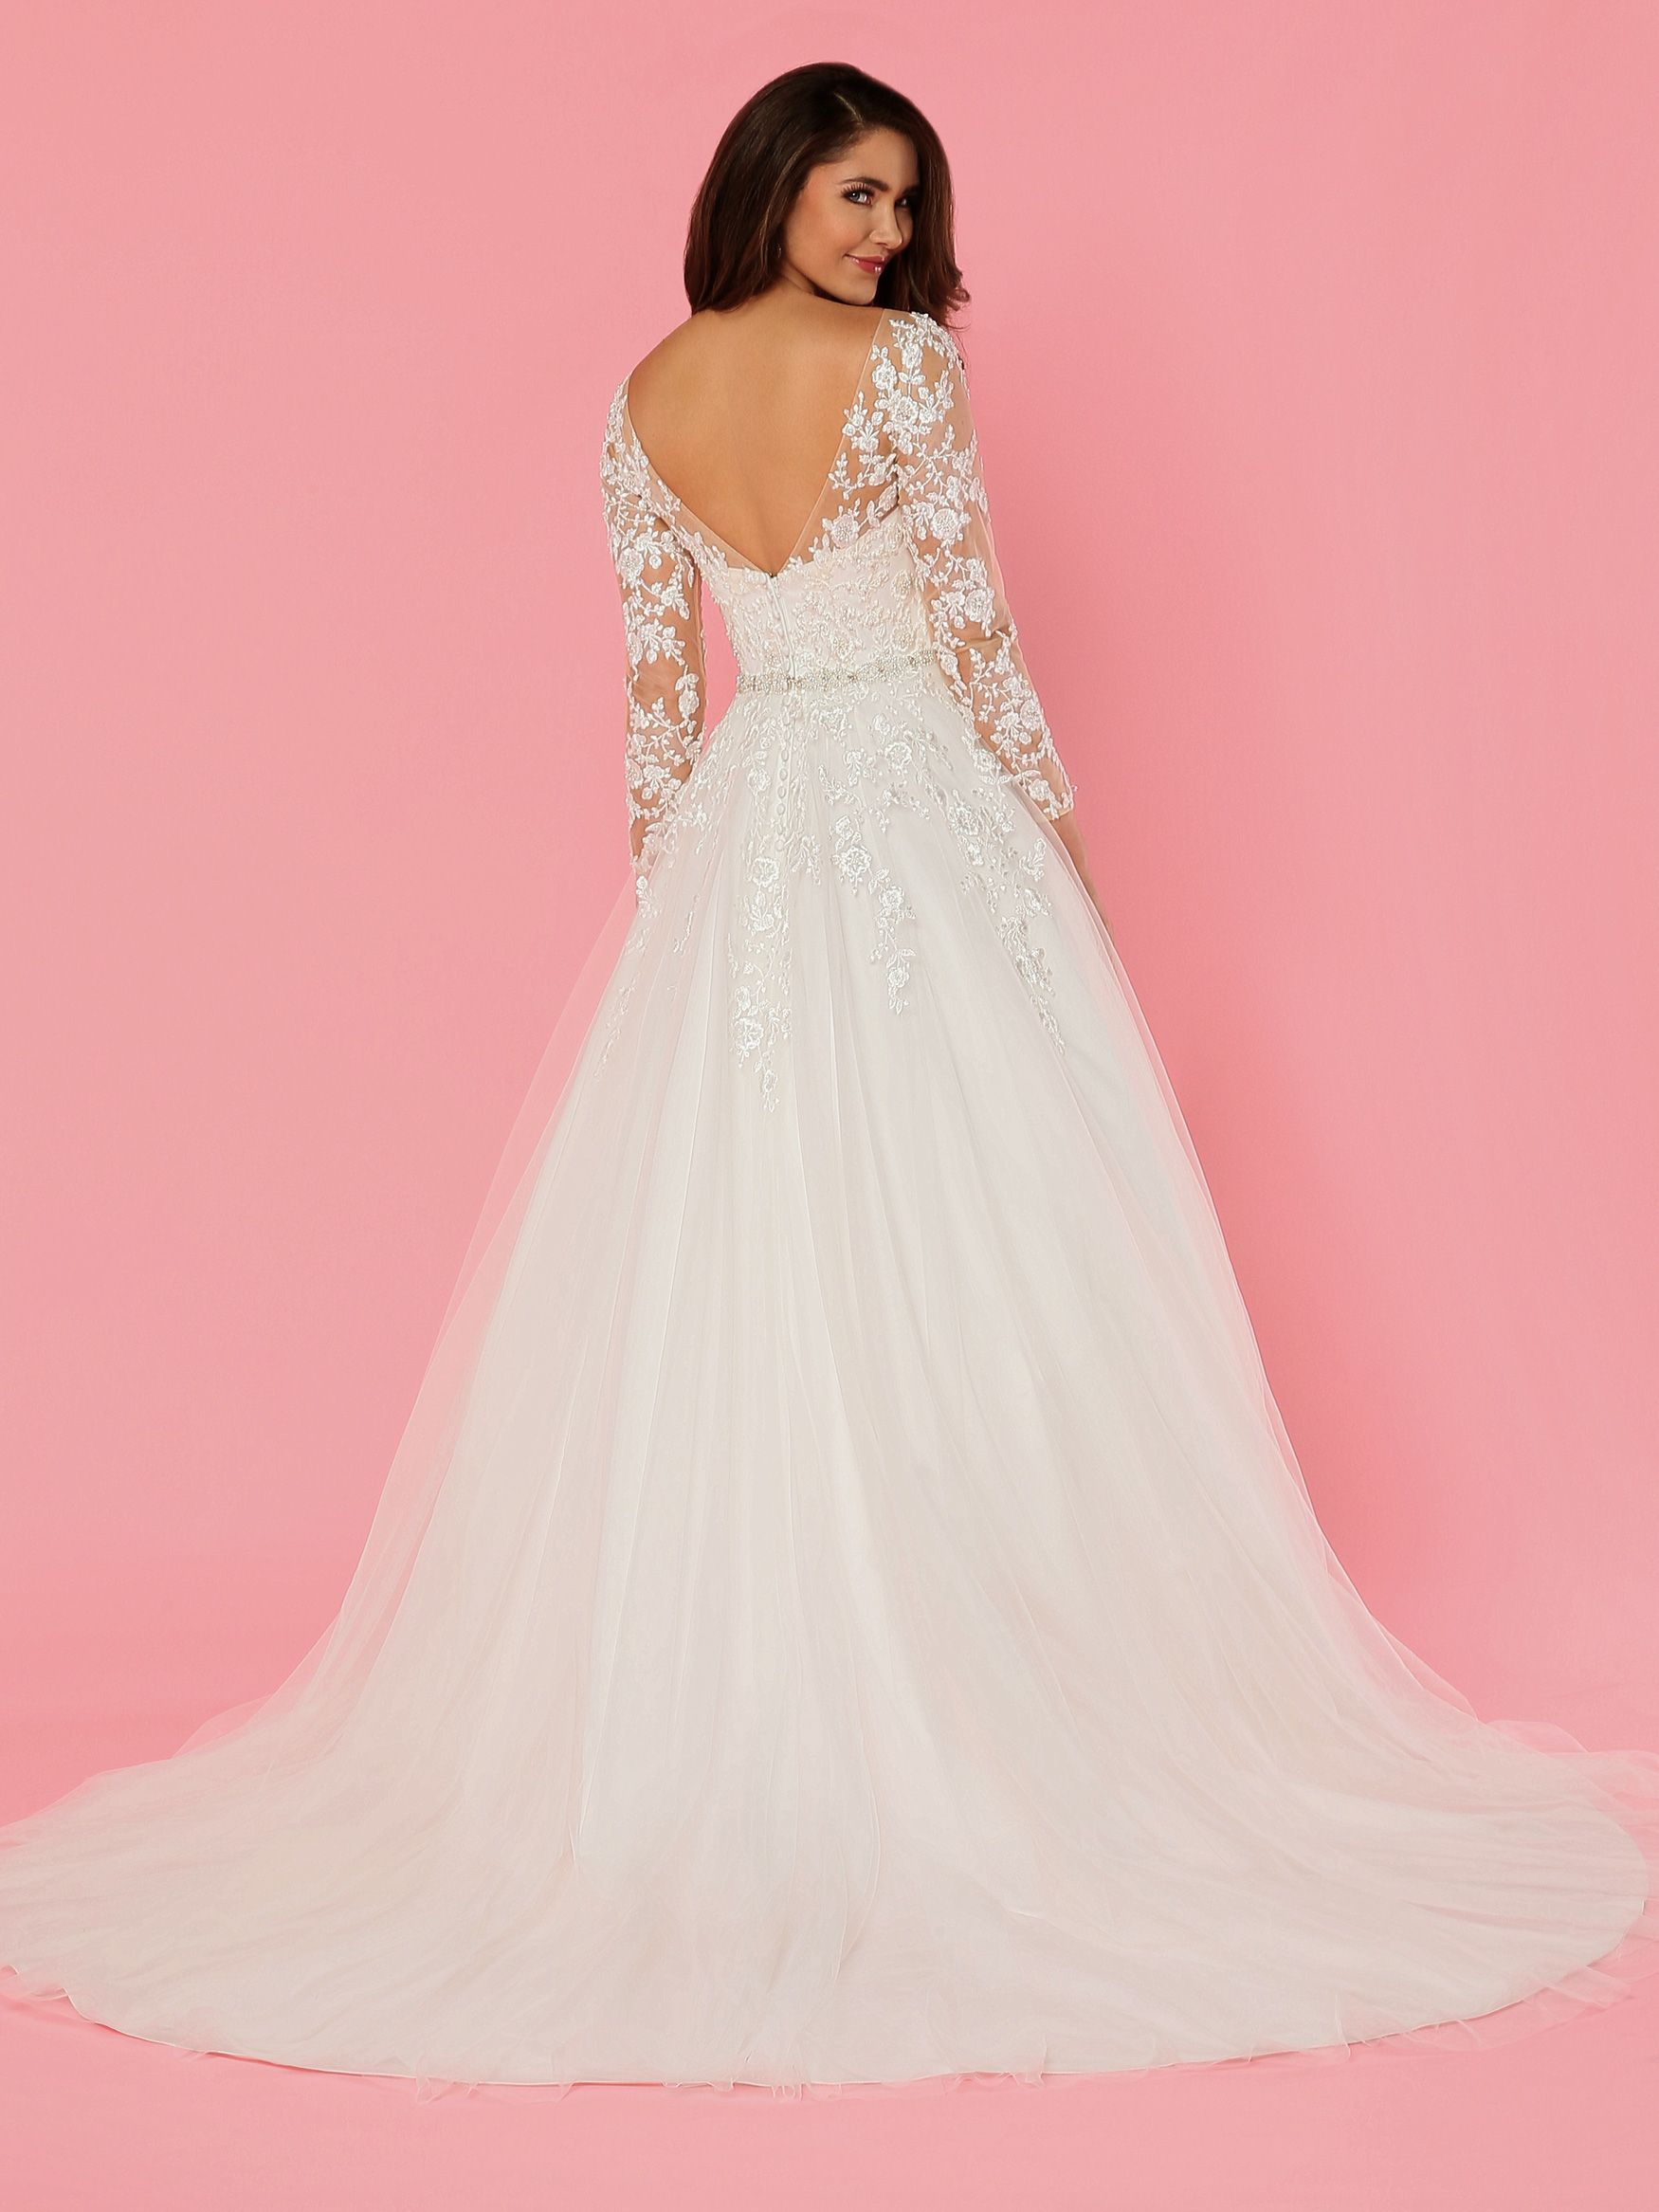 Image showing back view of style #50470 | B Wedding Dresses | Pinterest